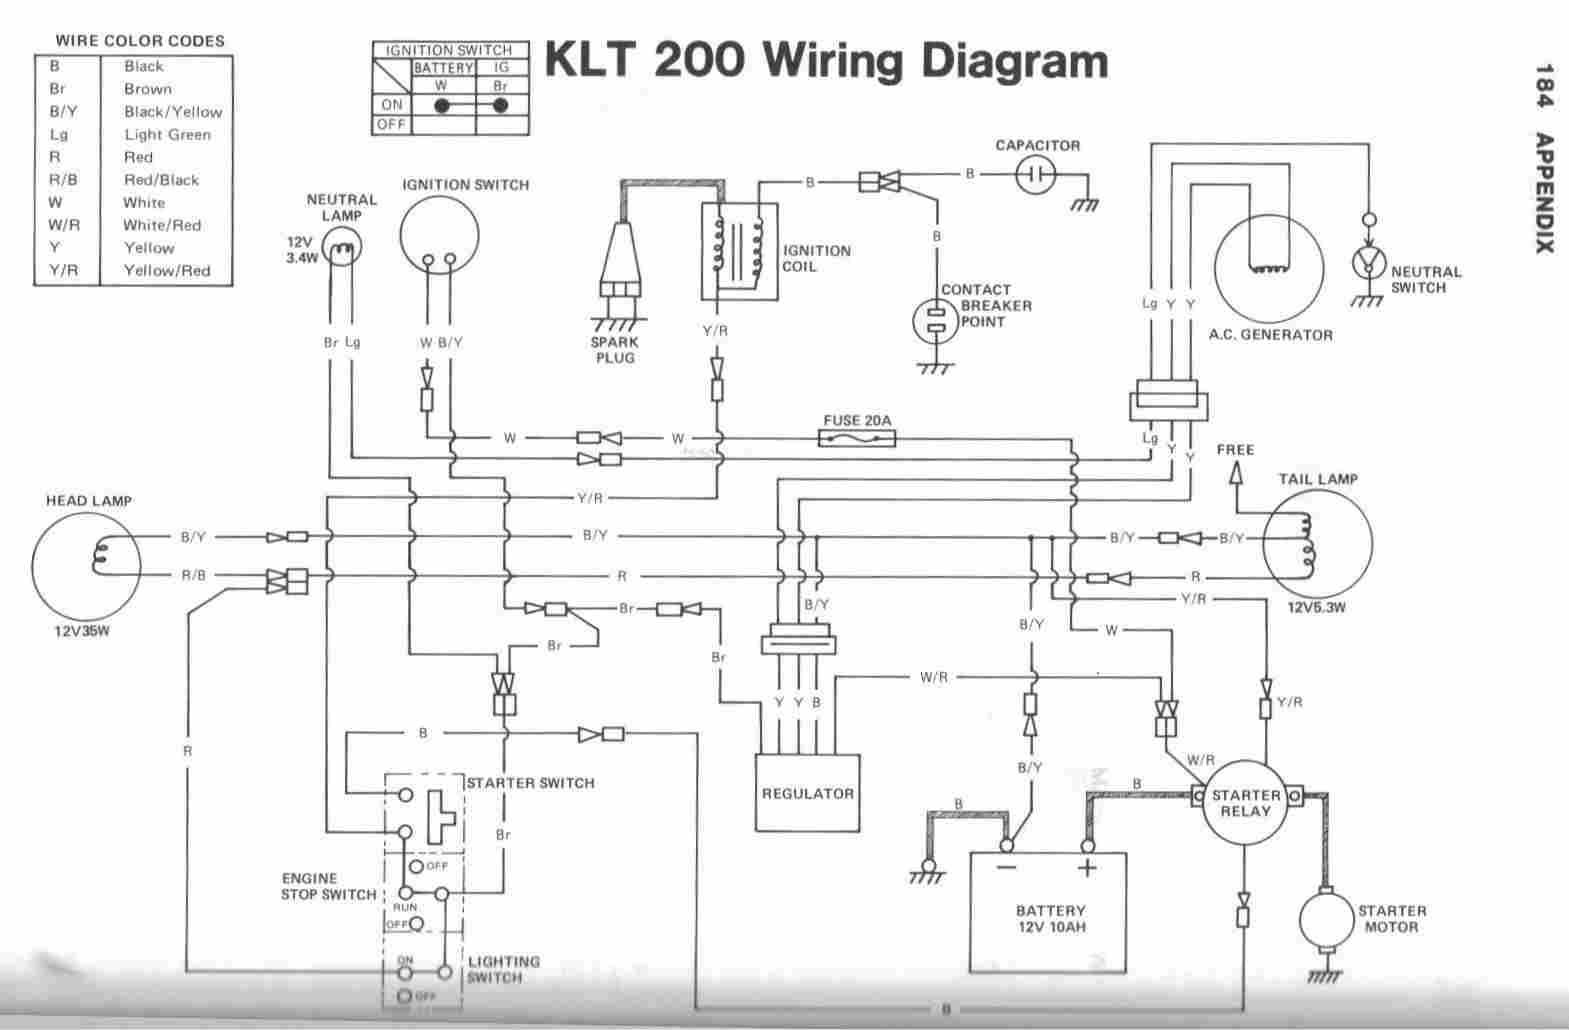 residential electrical wiring diagrams pdf easy routing | submersible well  pump, electrical wiring diagram, electrical circuit diagram  pinterest